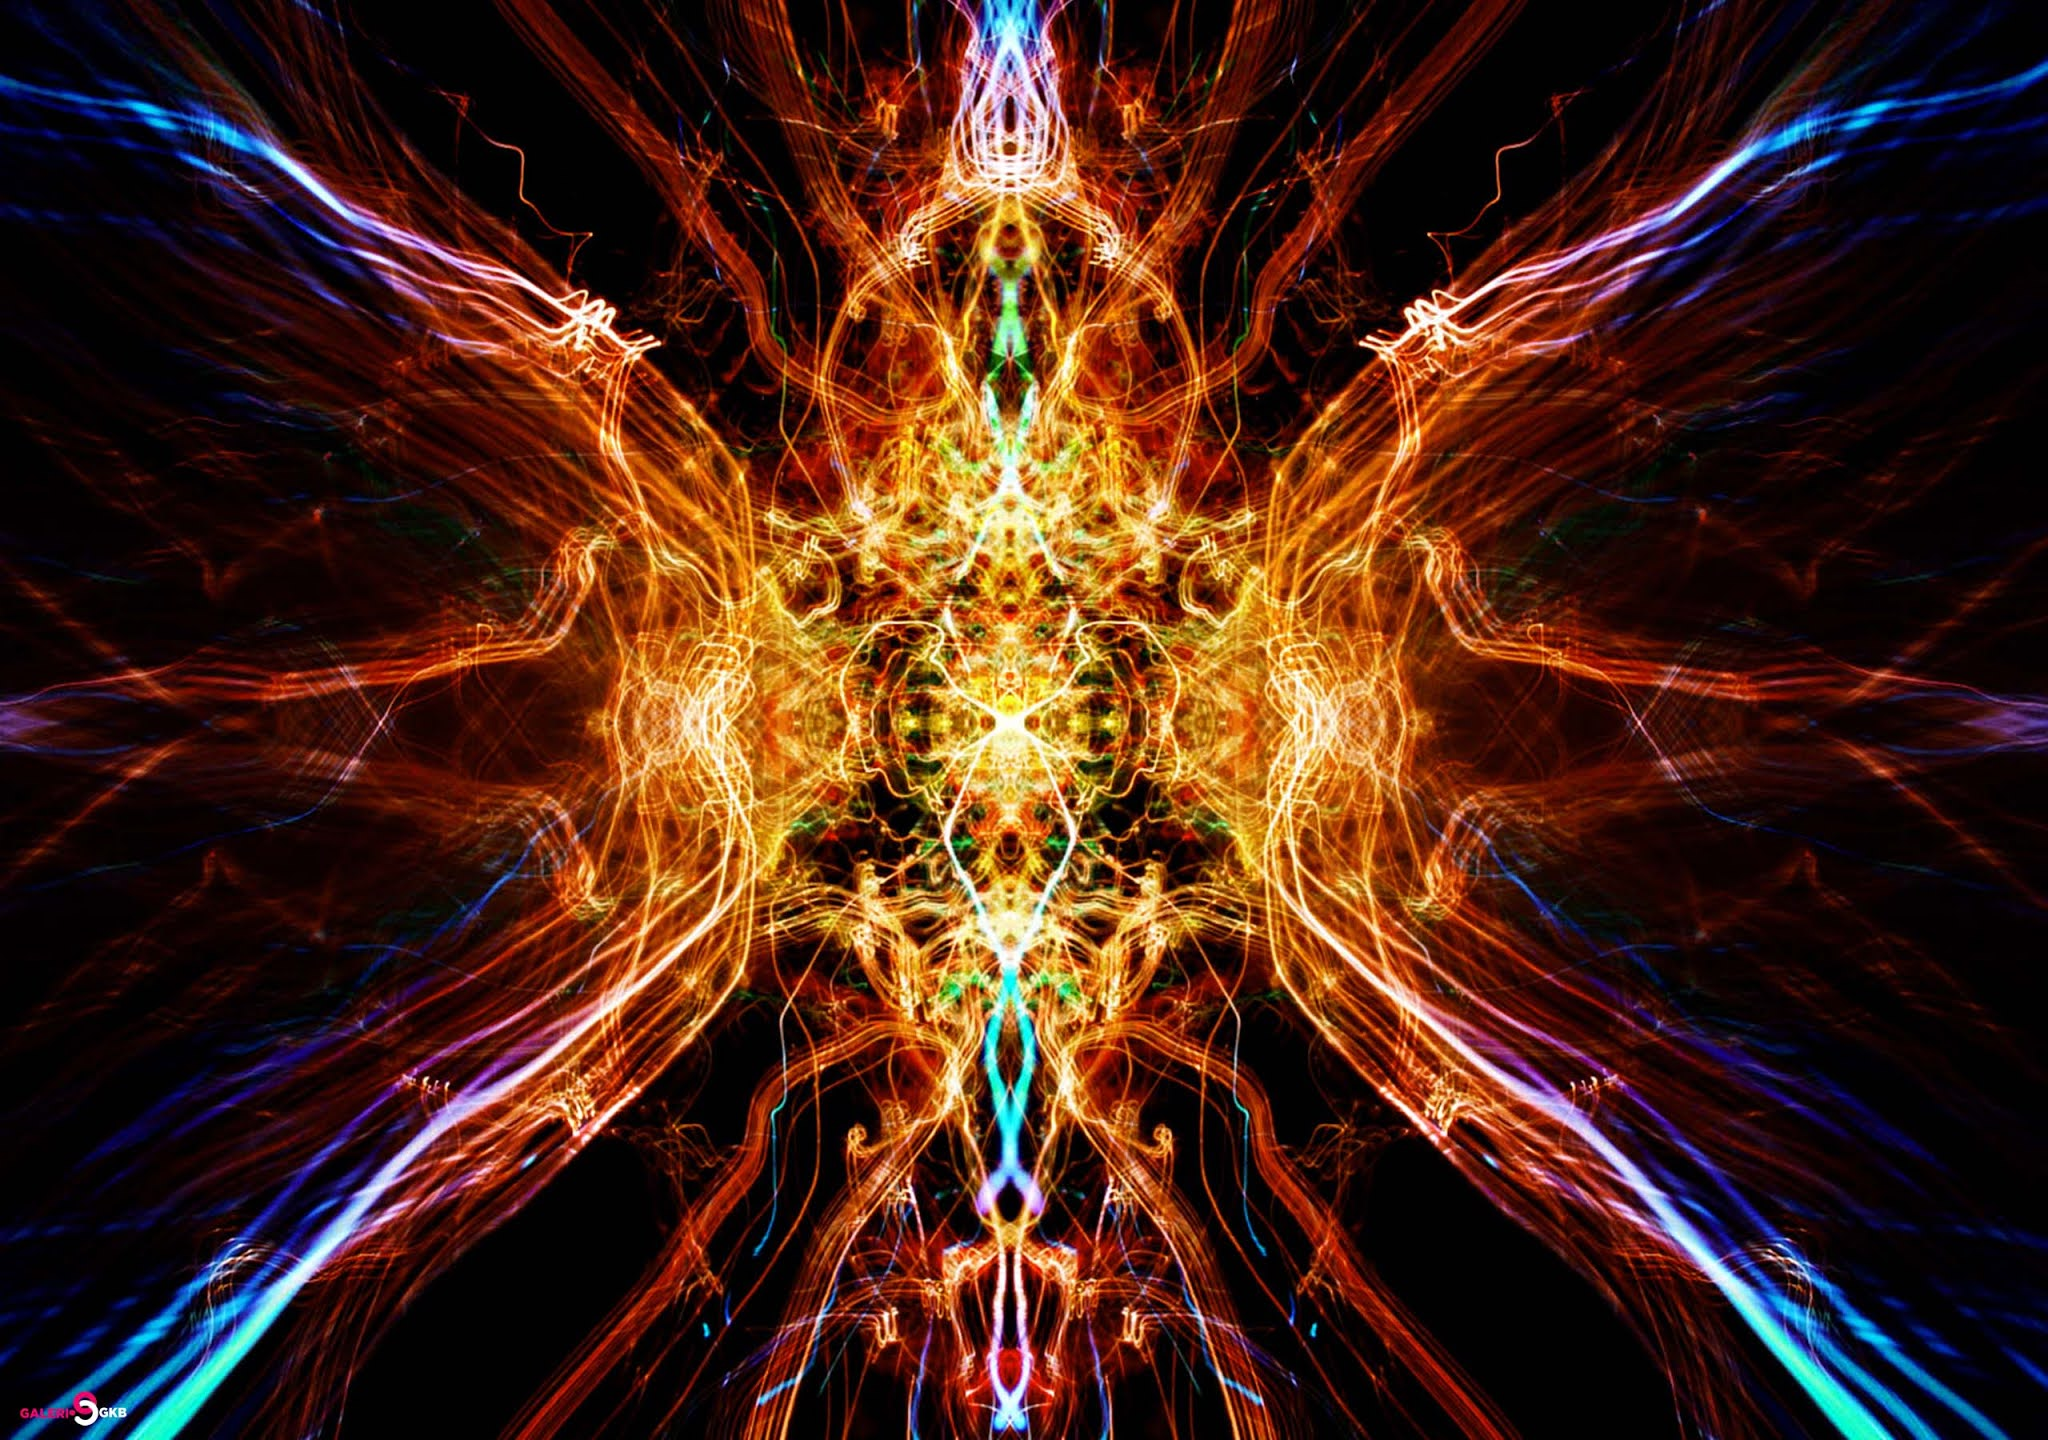 14 Awesome Abstract Ultra HD 8K Wallpaper For Desktop PC, Abstract Wallpaper HD